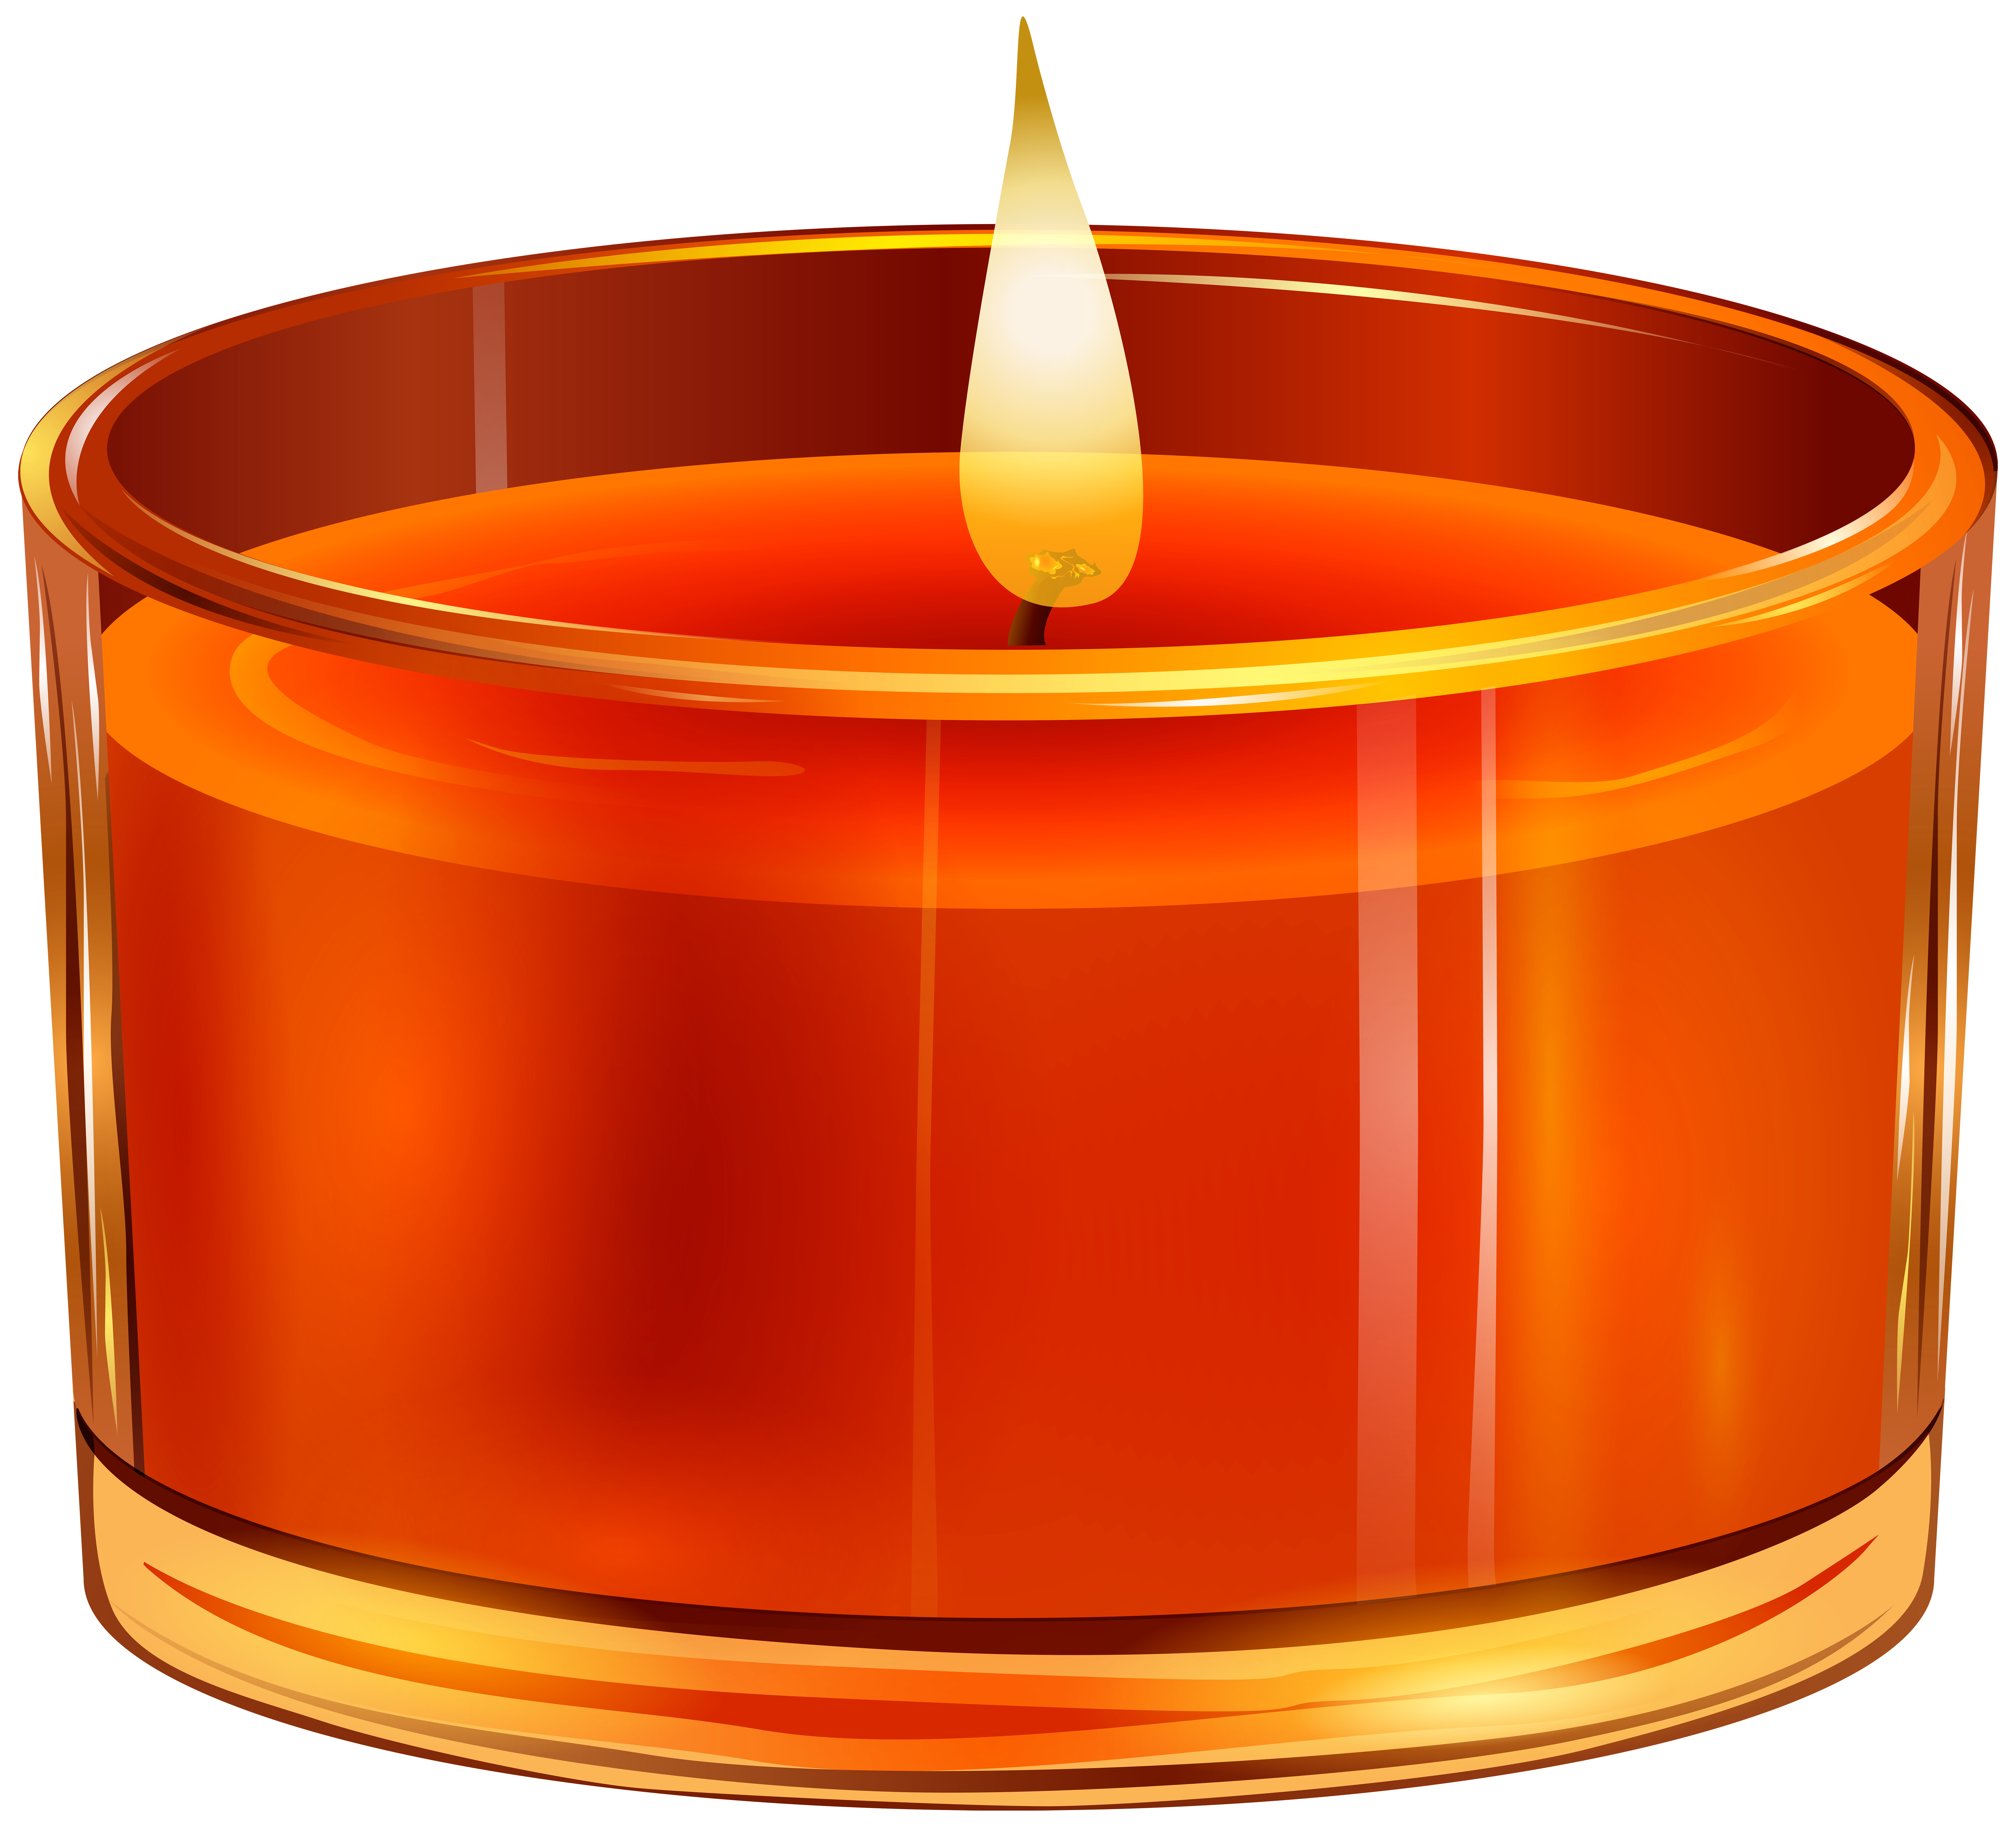 clip Candle clipart red candle. Cup png clip art.